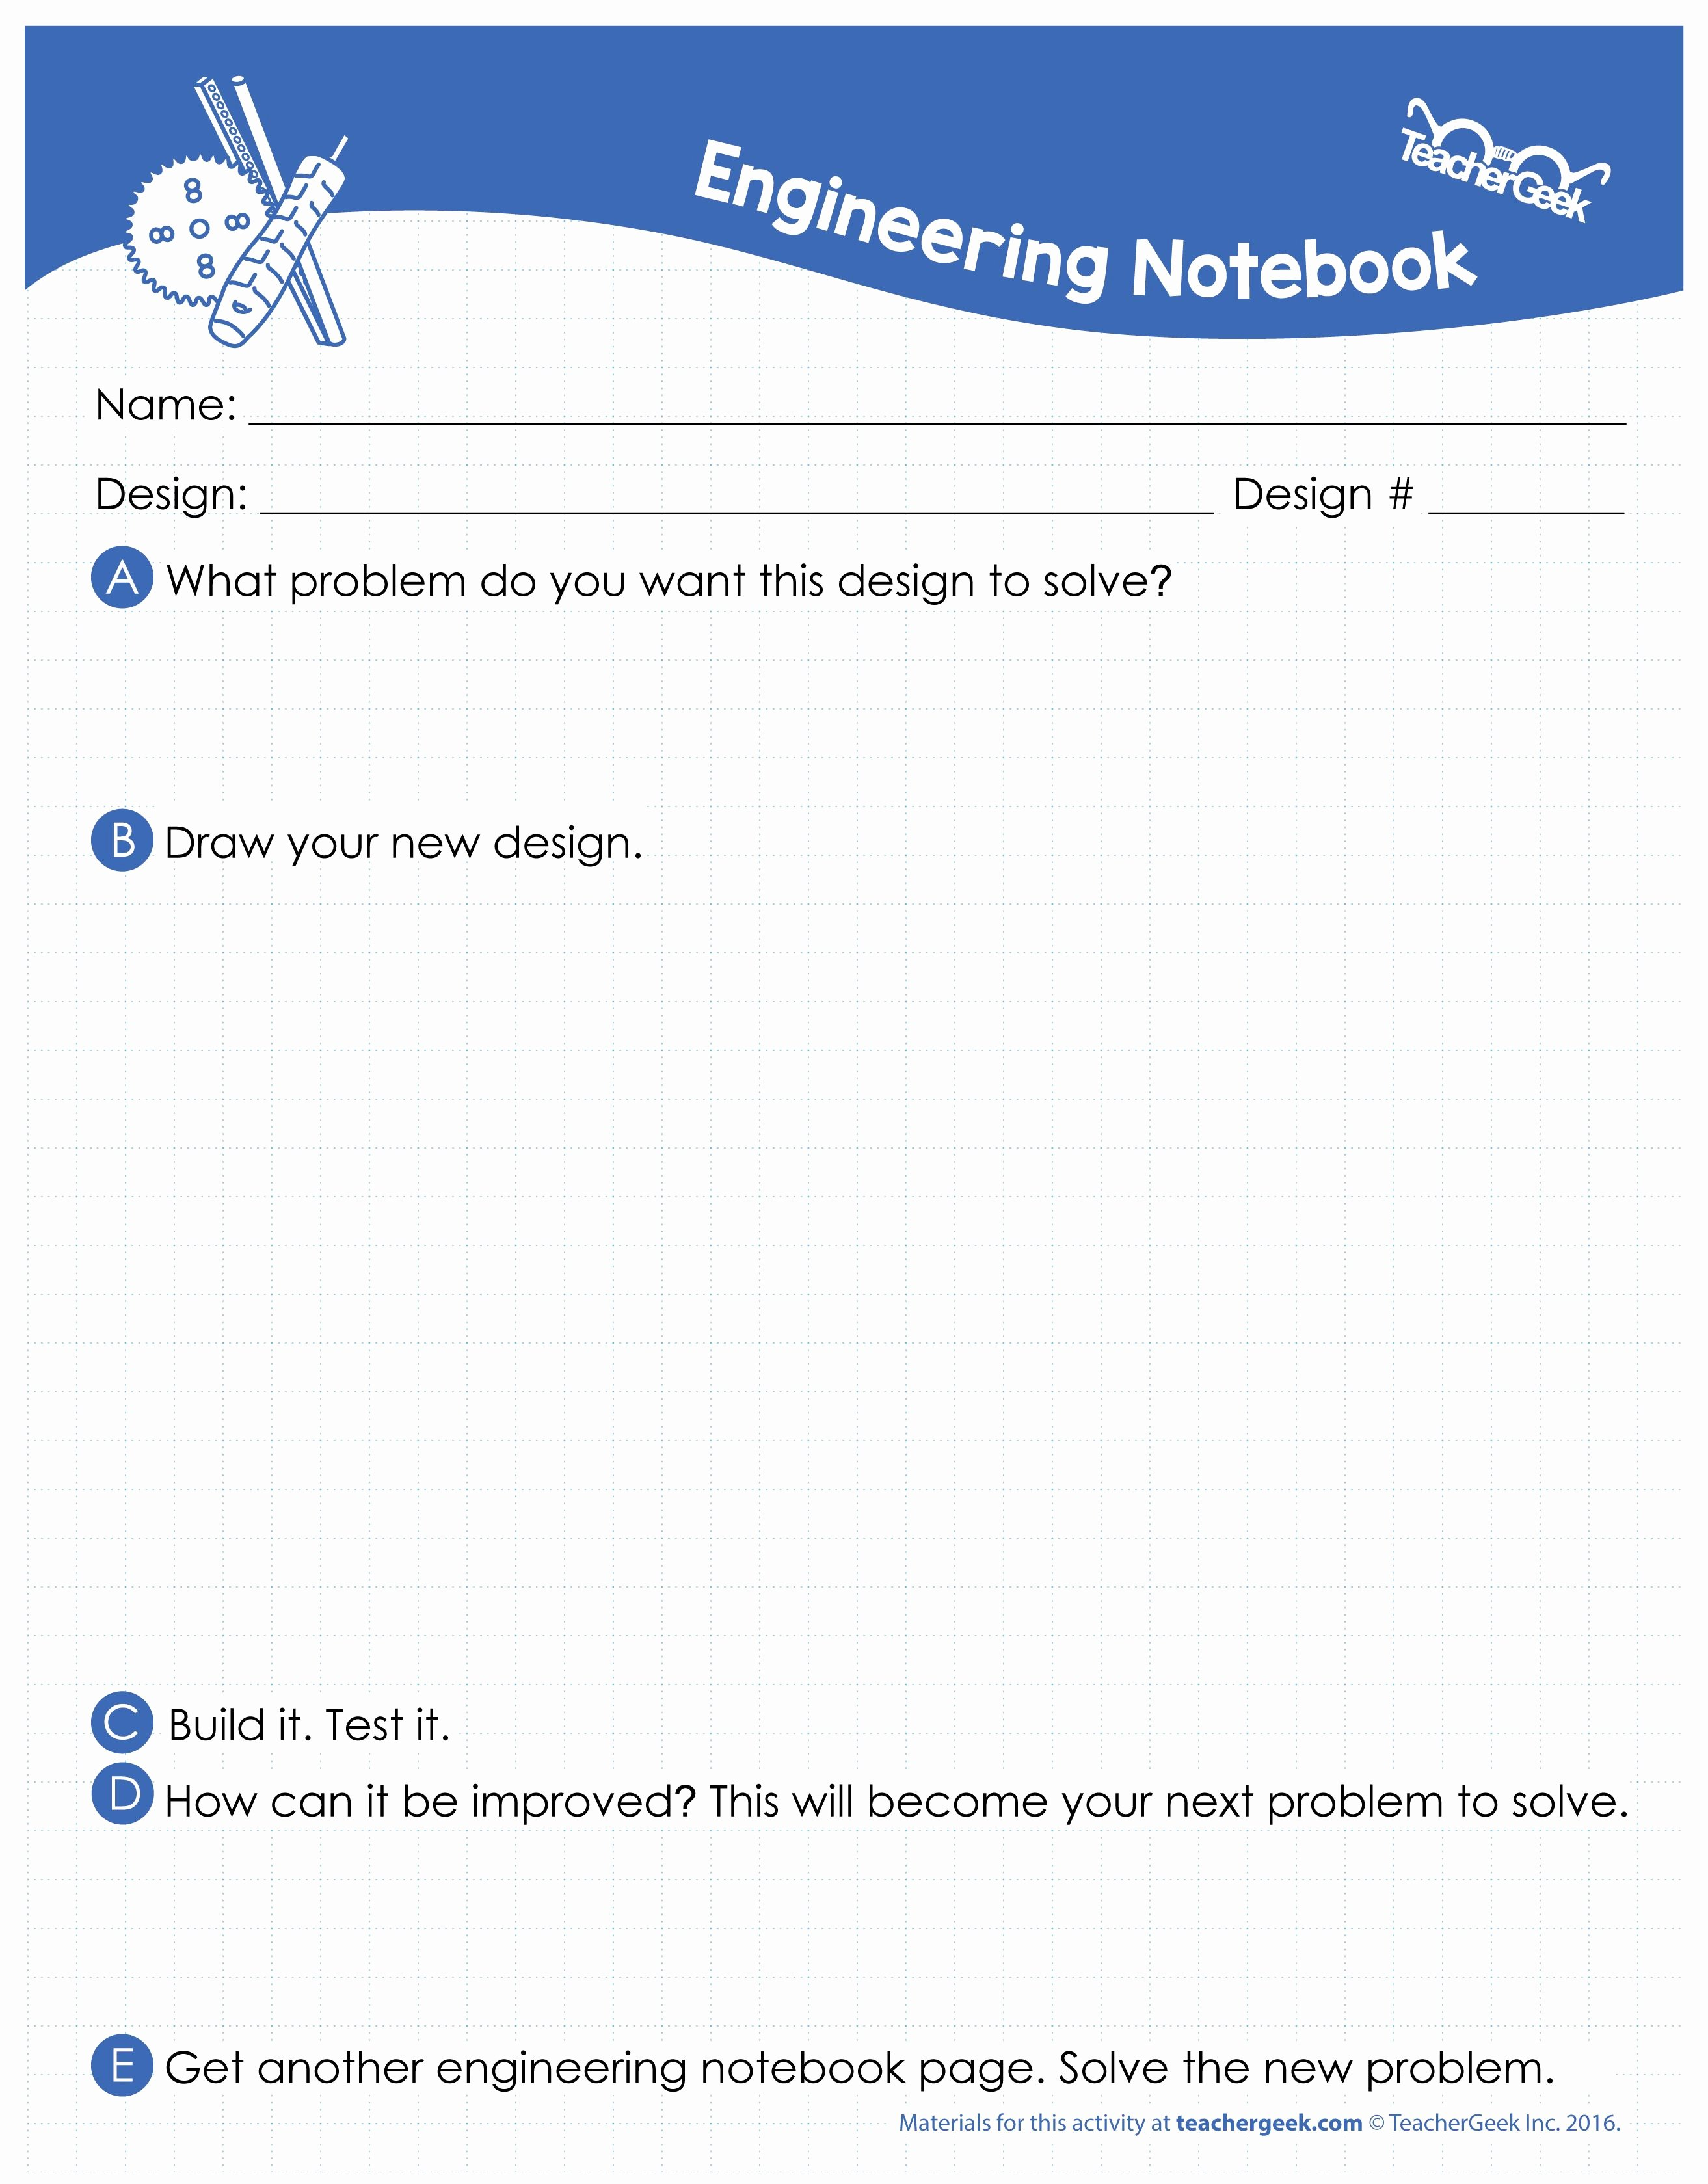 Engineering Design Process Worksheet New Free Stem Steam Maker Movement Document Download